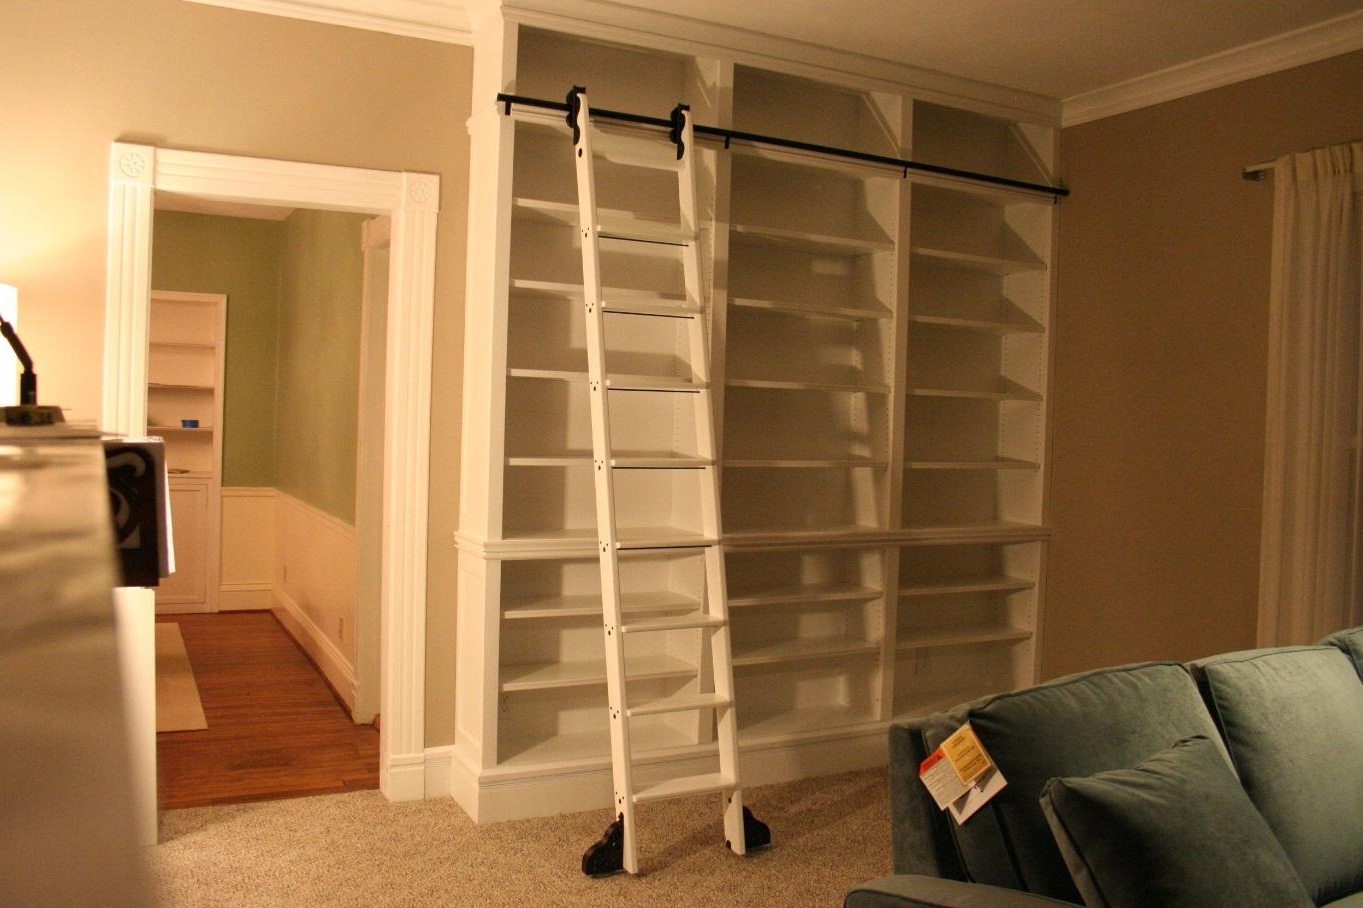 Sliding Library Ladder In Current Do It Yourself Library Ladder (View 11 of 15)